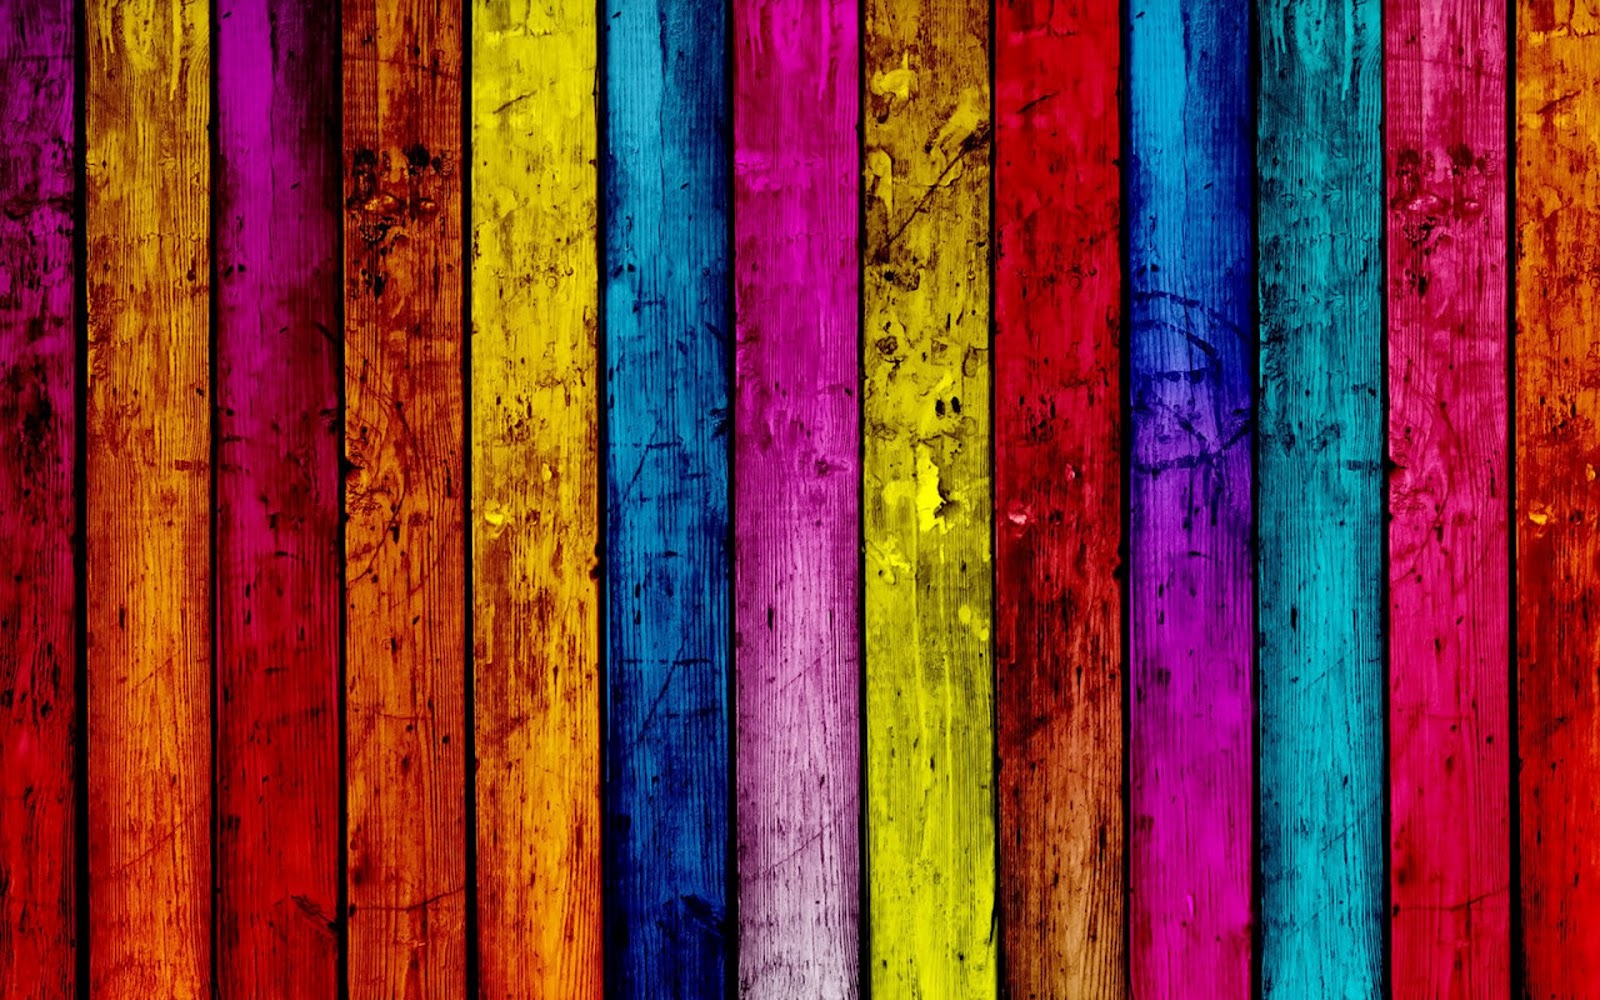 Desktop Wallpaper Colorful Wood Texture Desktop Wallpaper